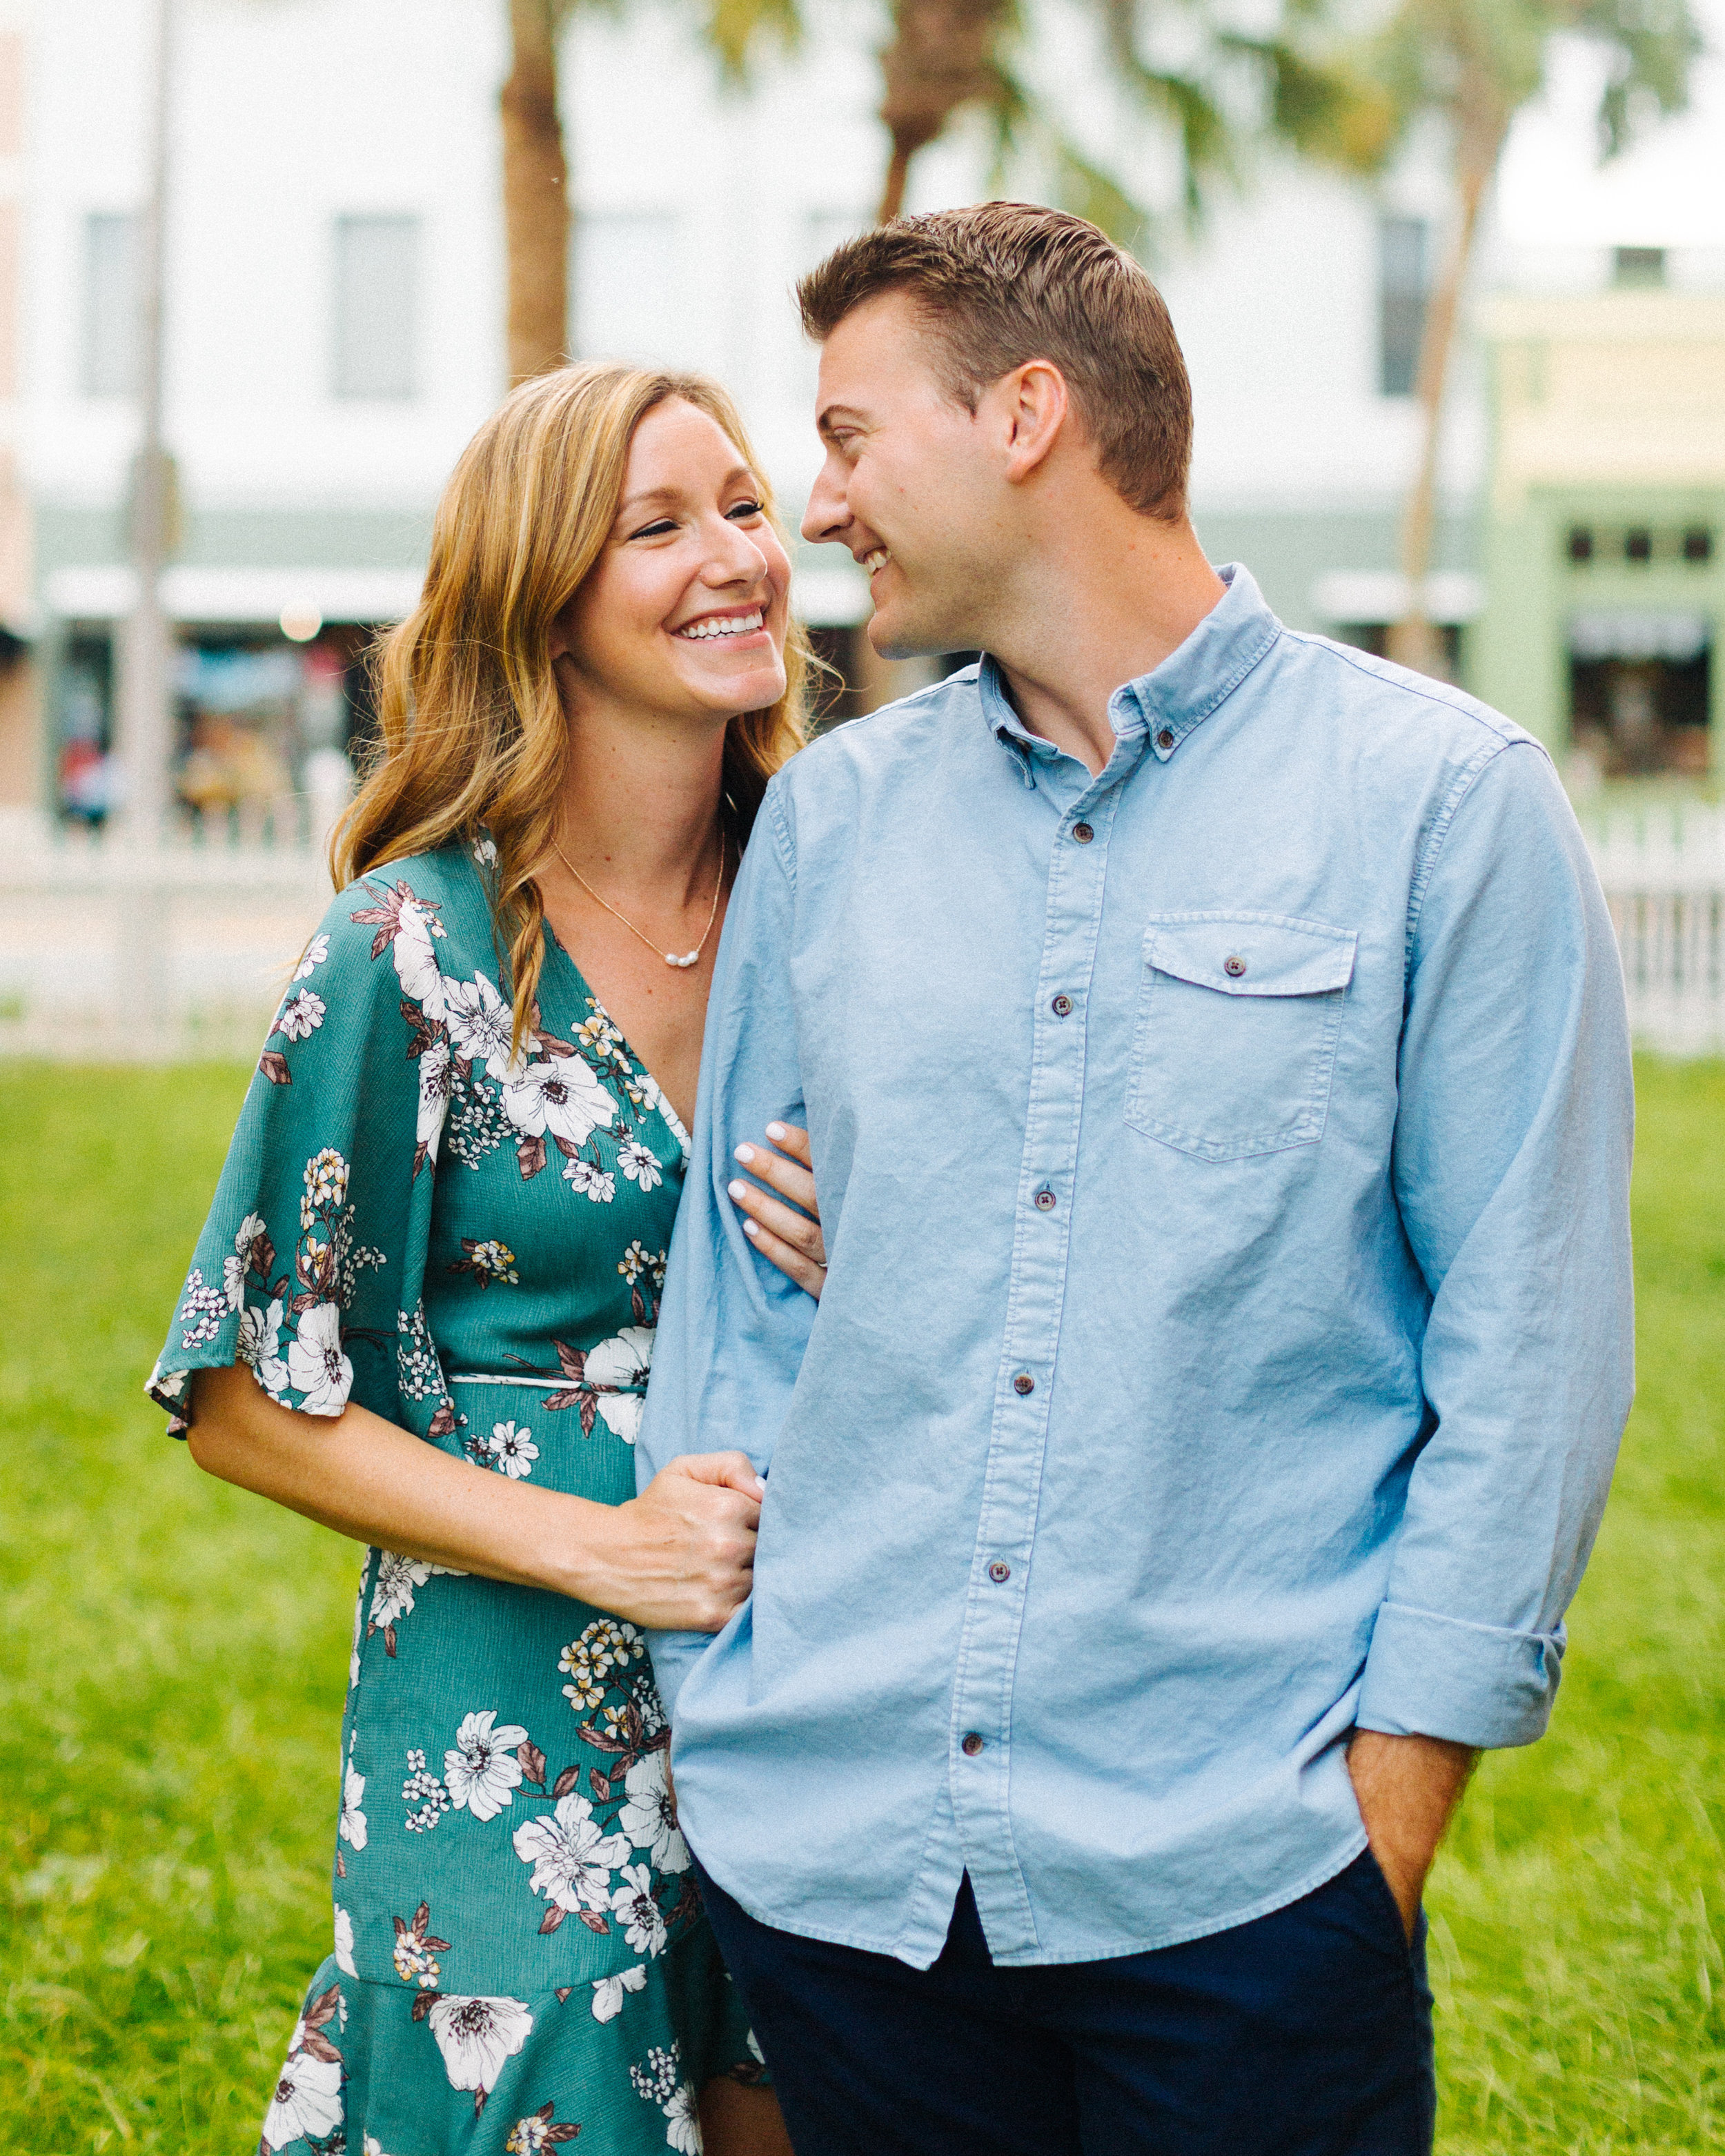 Matt _ Katie - Engagement - Jake _ Katie Photography_033.jpg